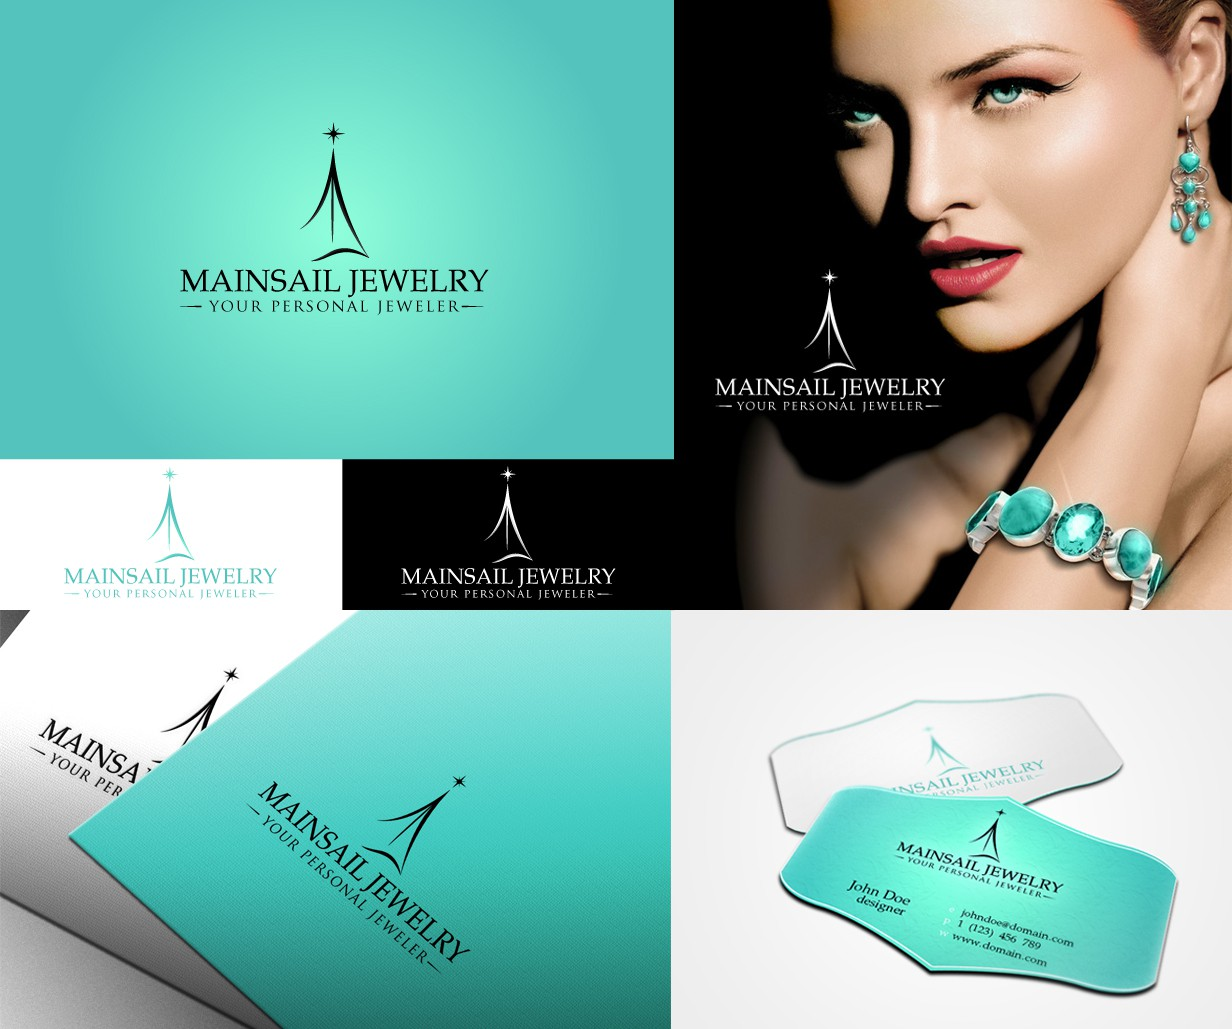 Need to revamp fine jewelry old logo ASAP!